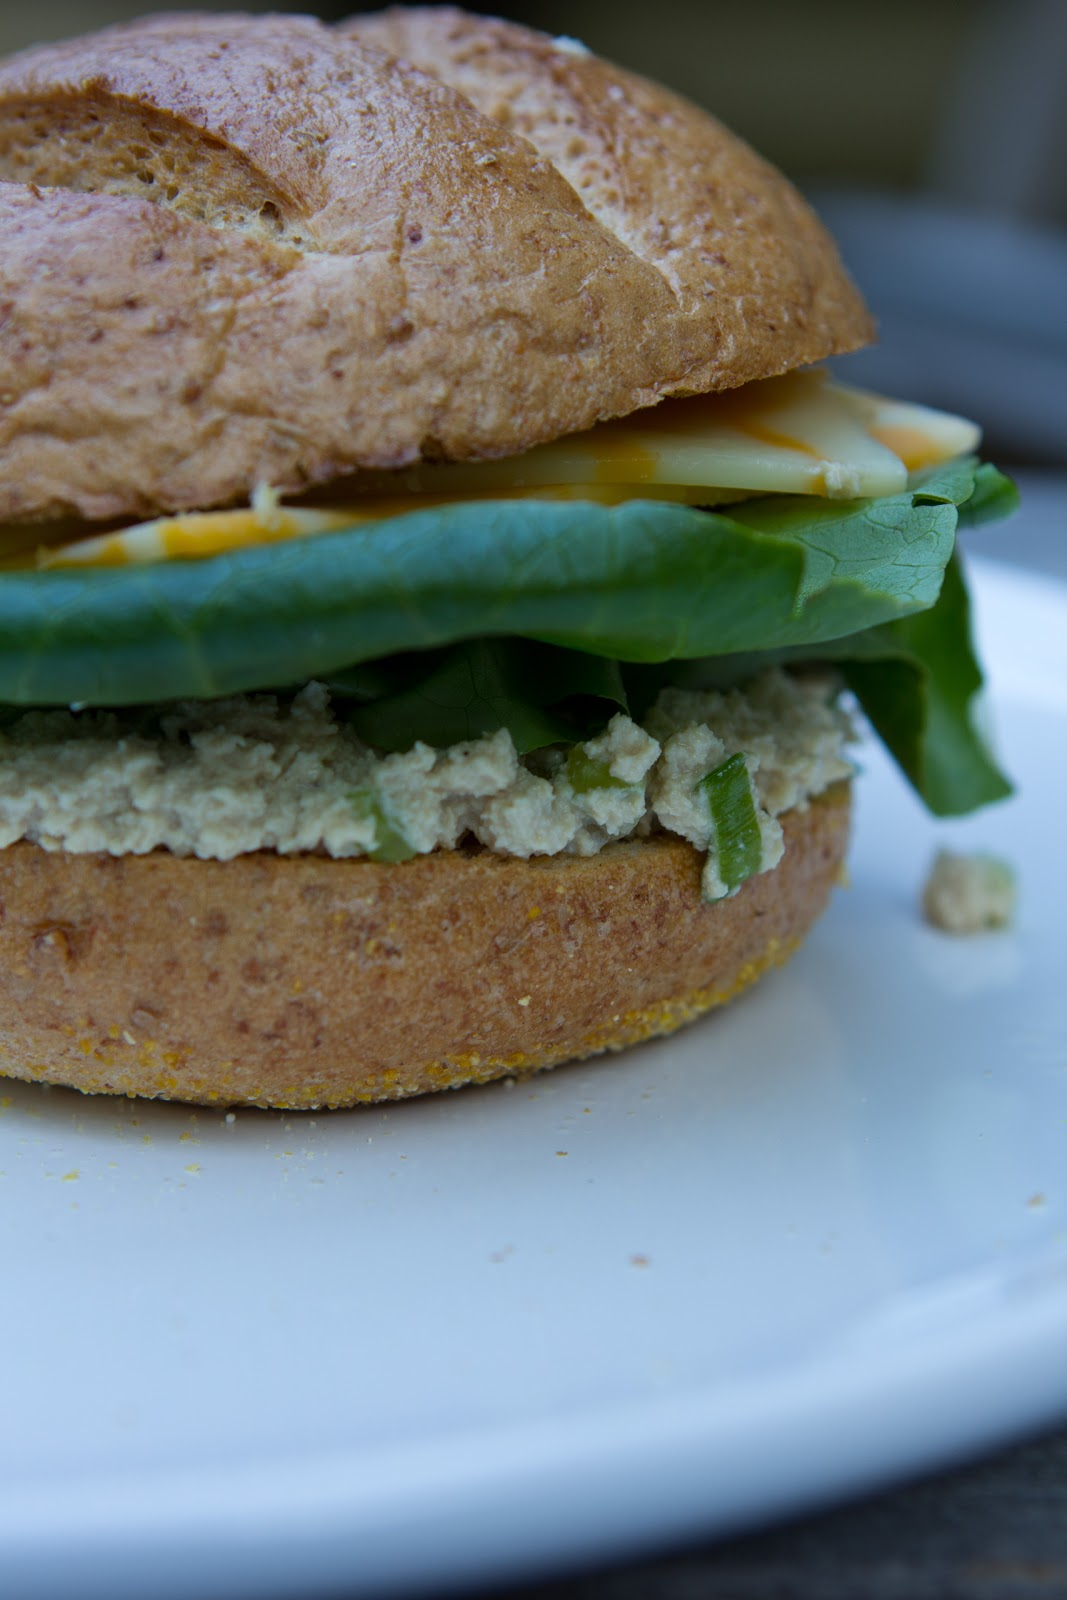 ... tofu spread tofu sandwich spread sandwich spread recipe vegan